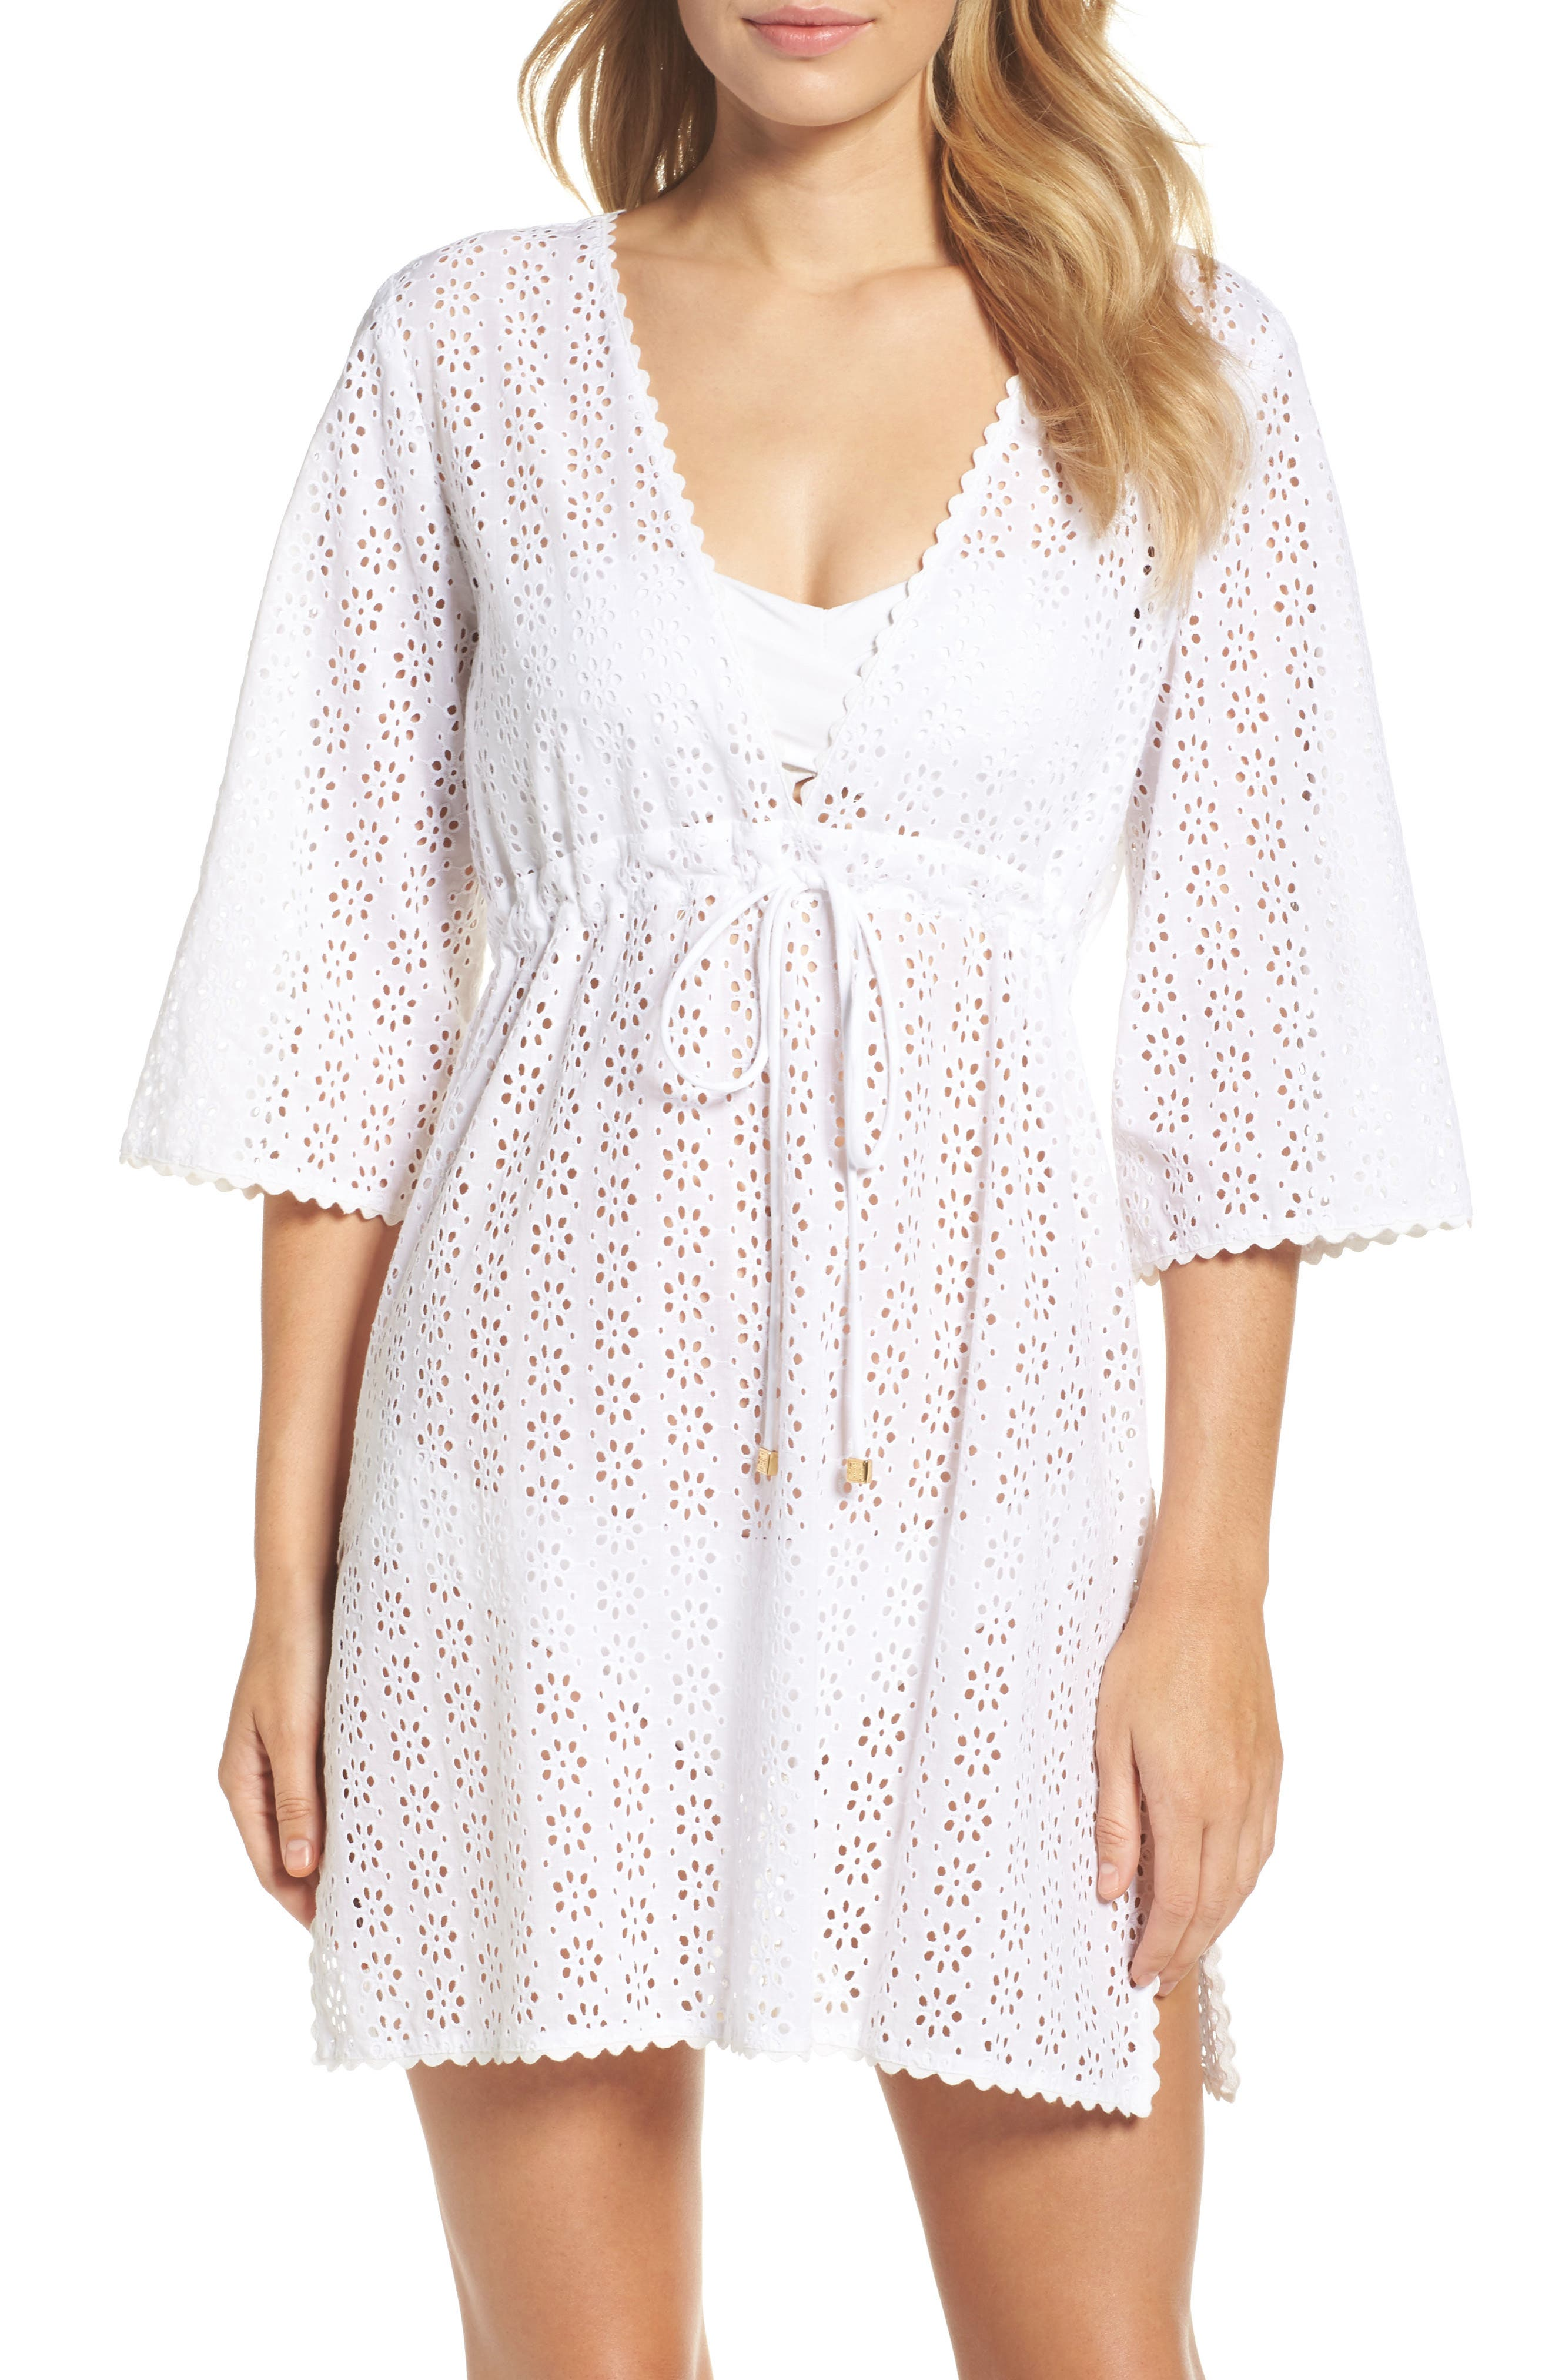 Alternate Image 1 Selected - Tory Burch Broderie Anglais Cover-Up Dress